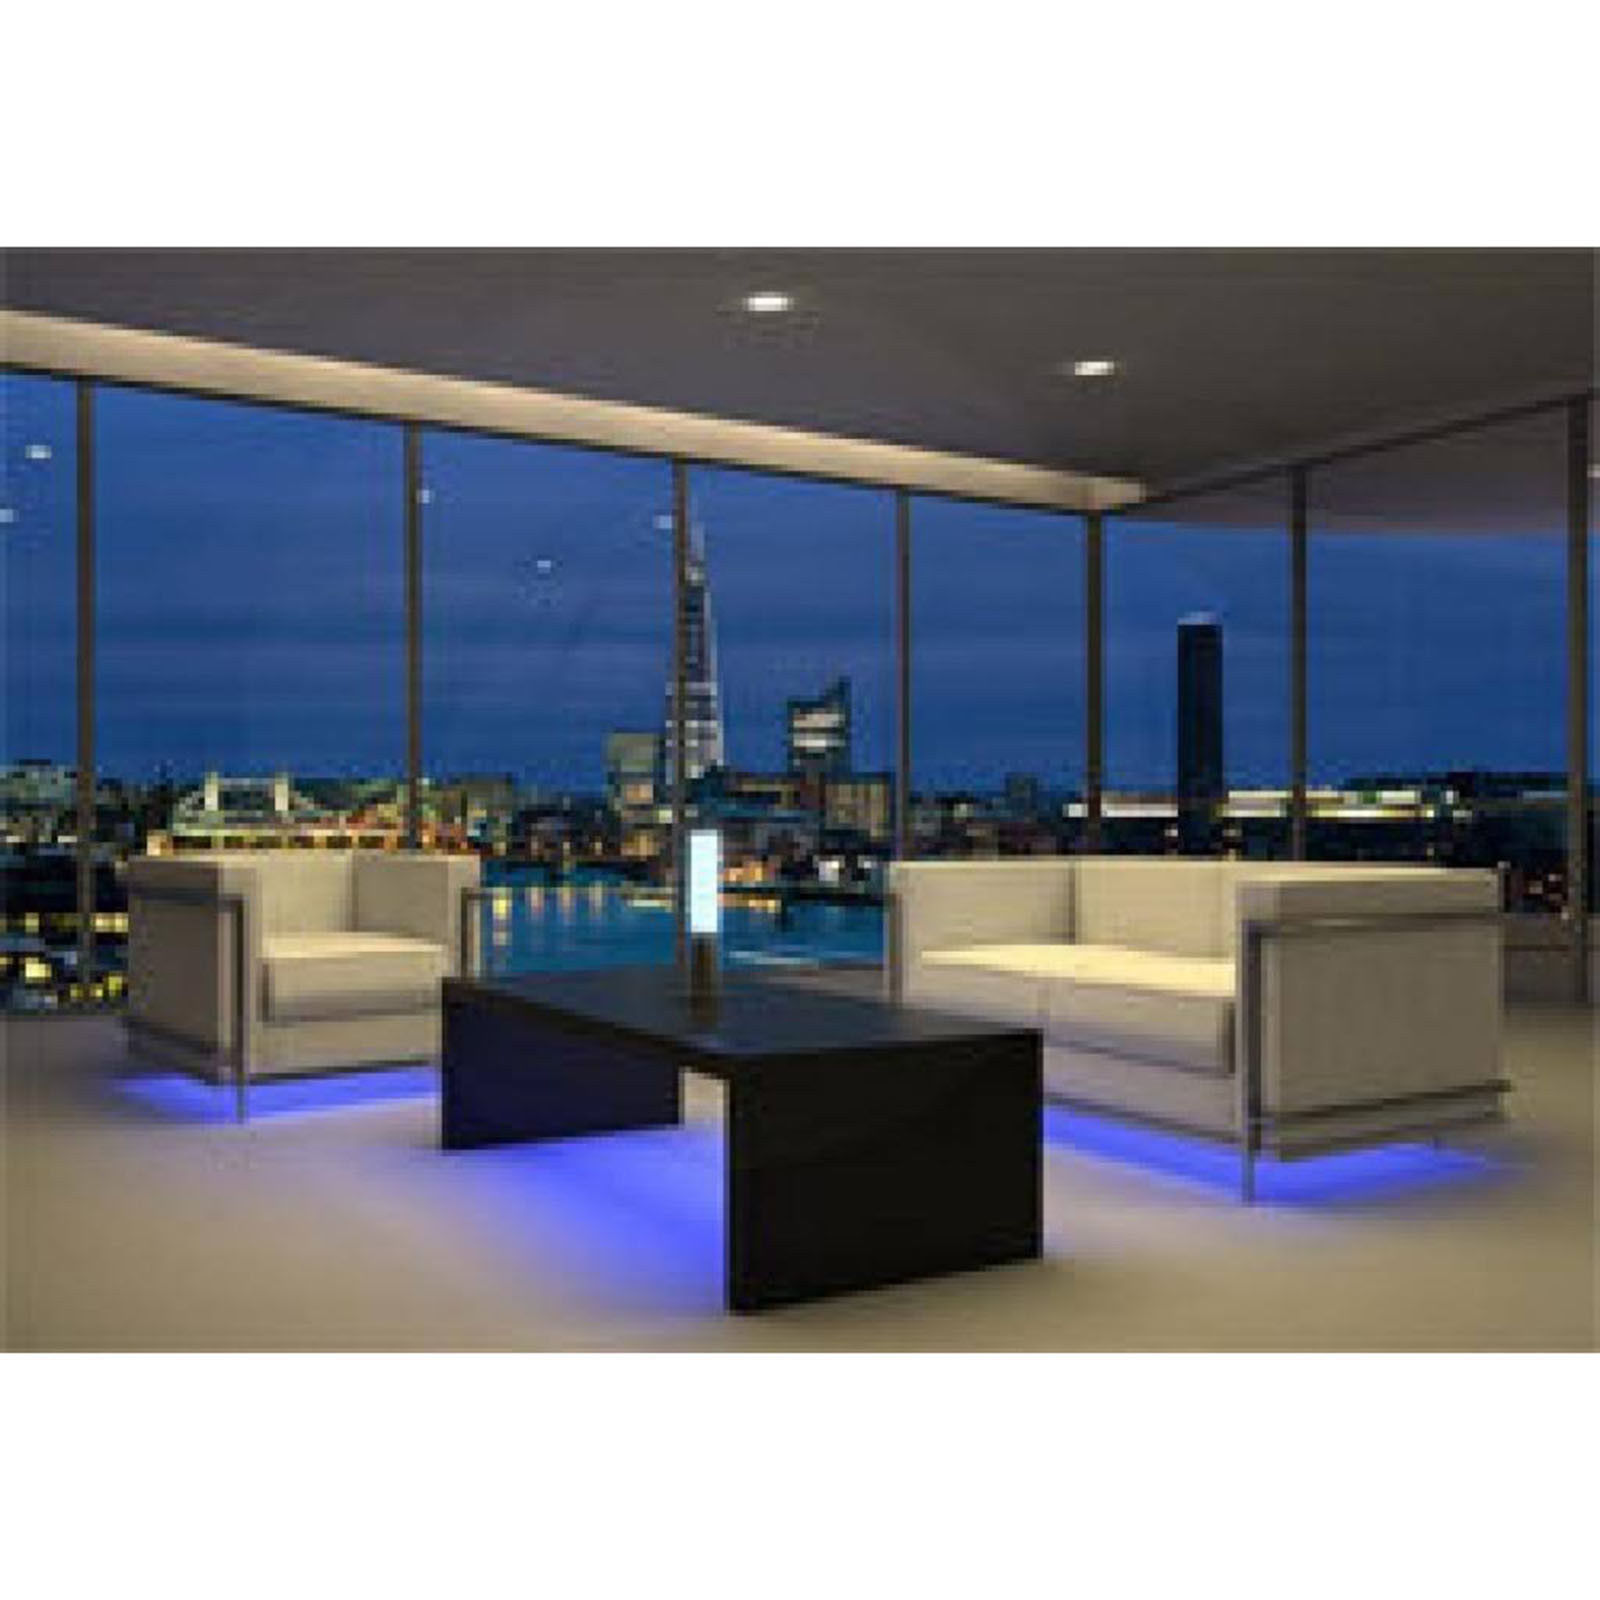 RGB LED Color Changing Couch Sofa Room Mood Illuminate Ambiance Lighting Lights - $49.95